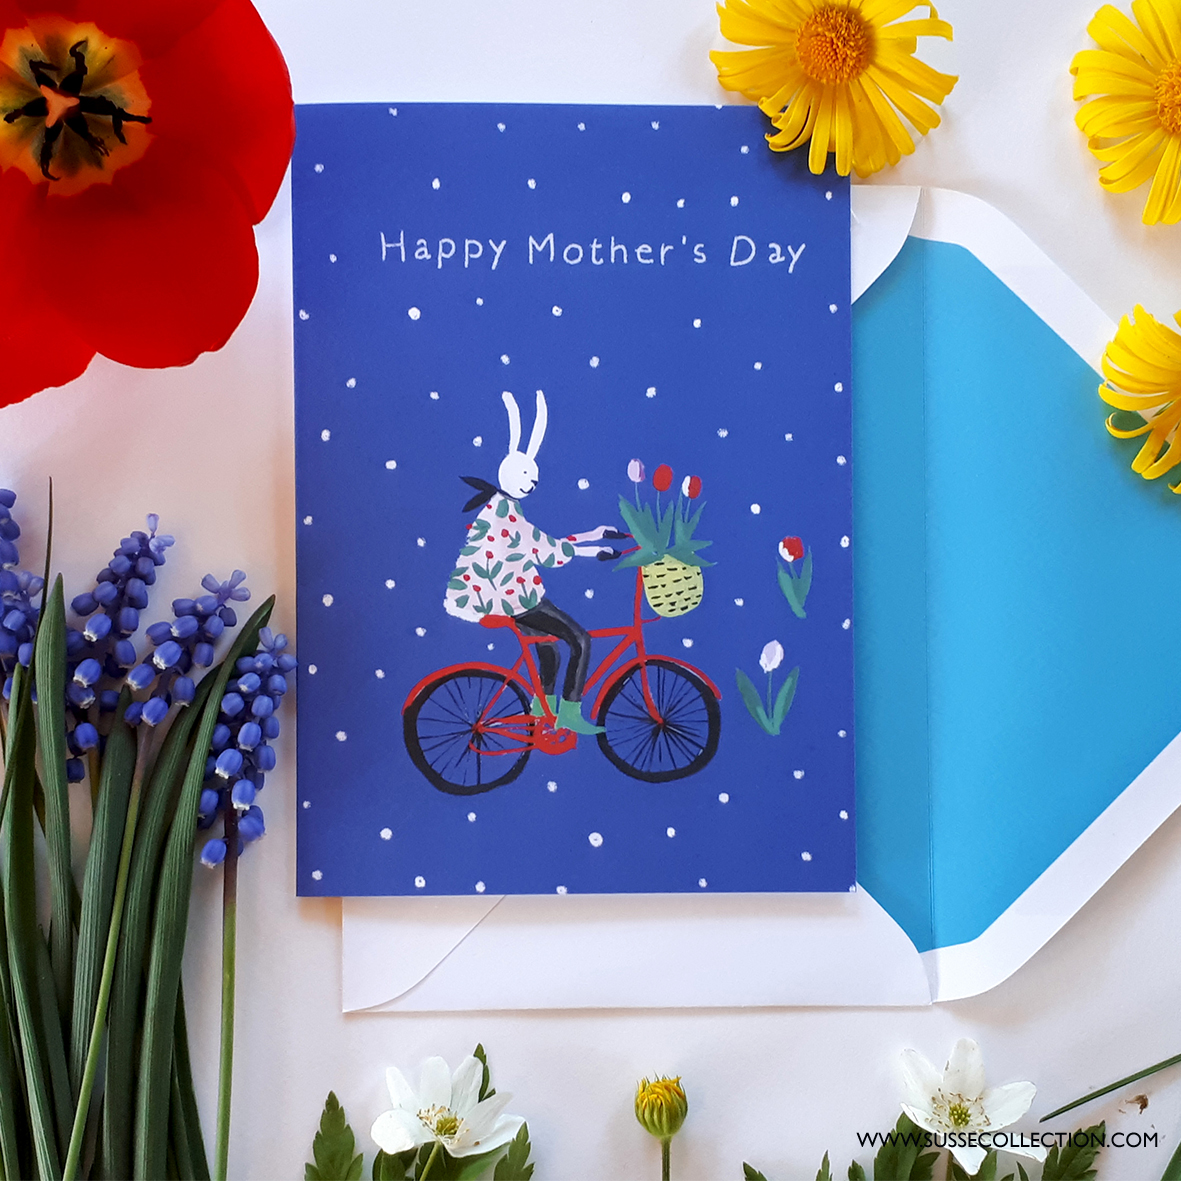 Mothers day Sweden Susse Collection.jpg